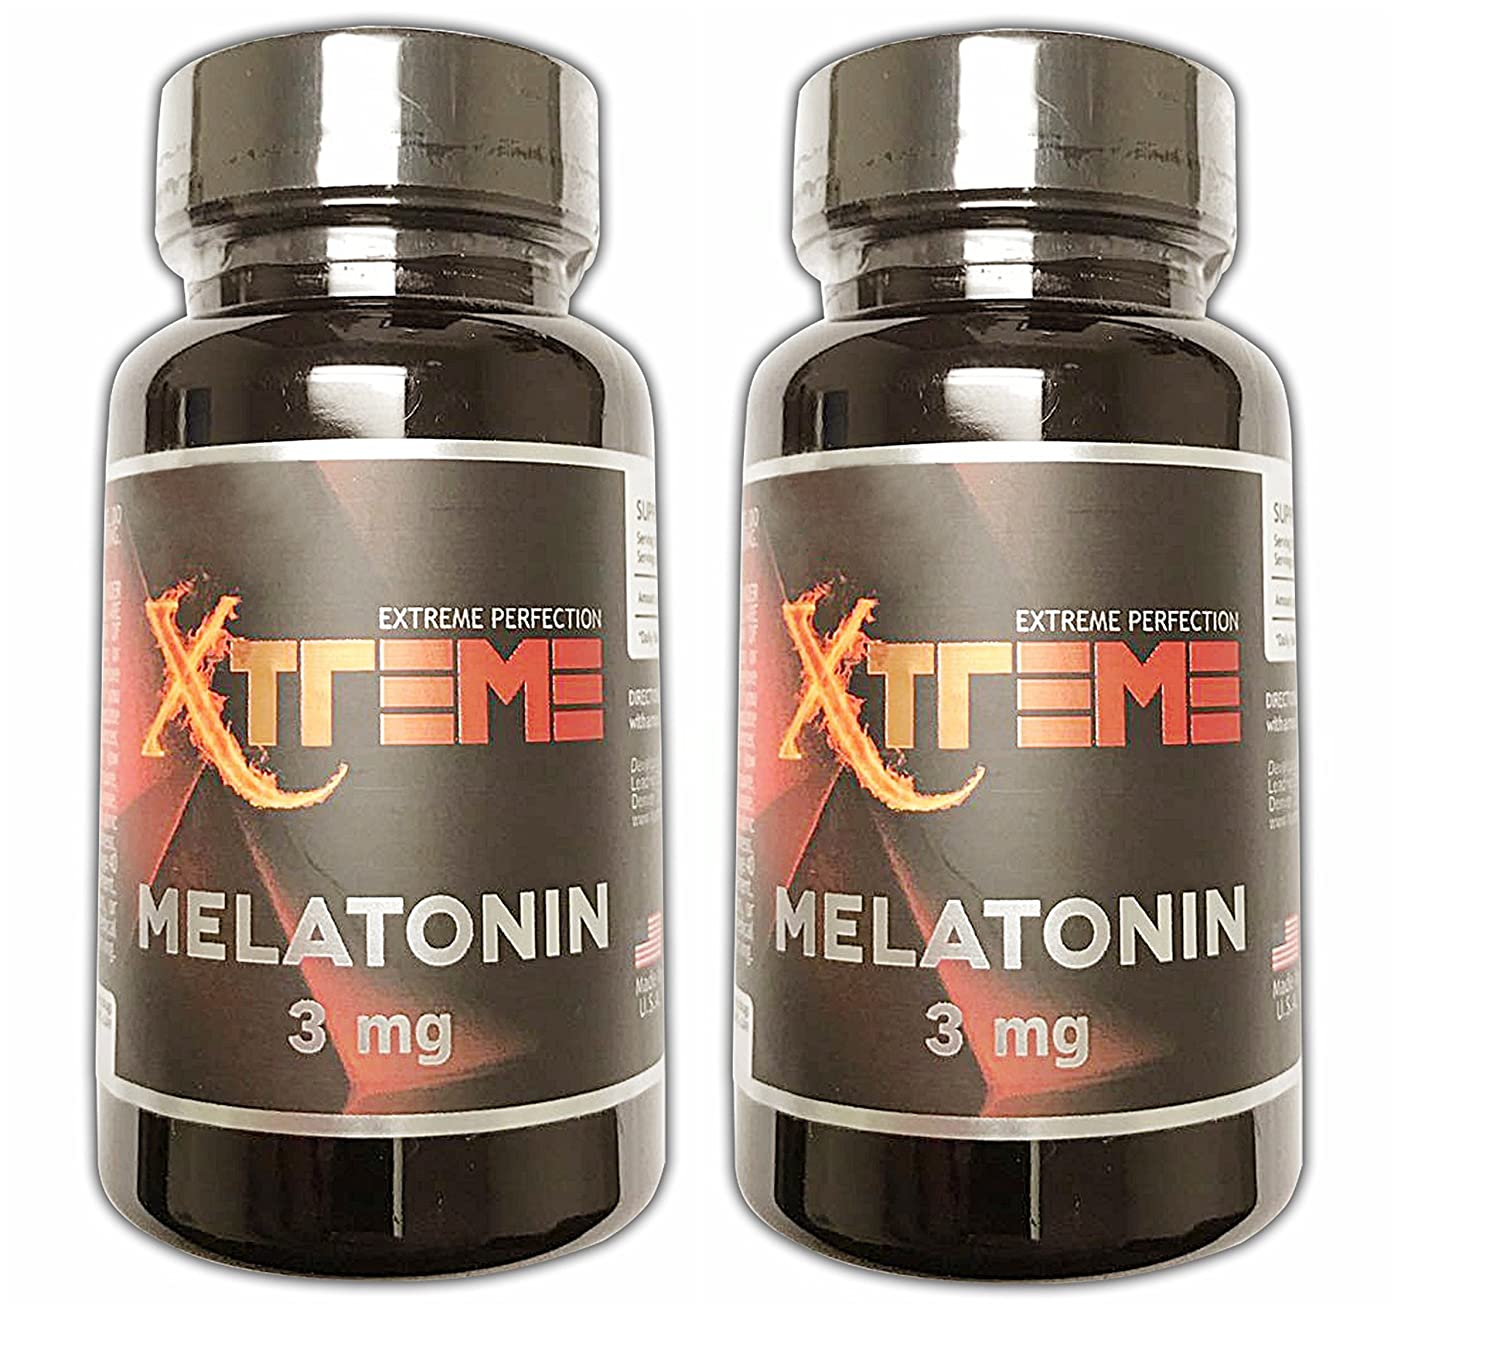 Amazon.com: Pharmaceutical Grade Melatonin by Xtreme :: 3mg Tablets :: Better Sleep :: Brain Health :: 100 Tabs :: Fast Acting and Non-Habit Forming Sleep ...